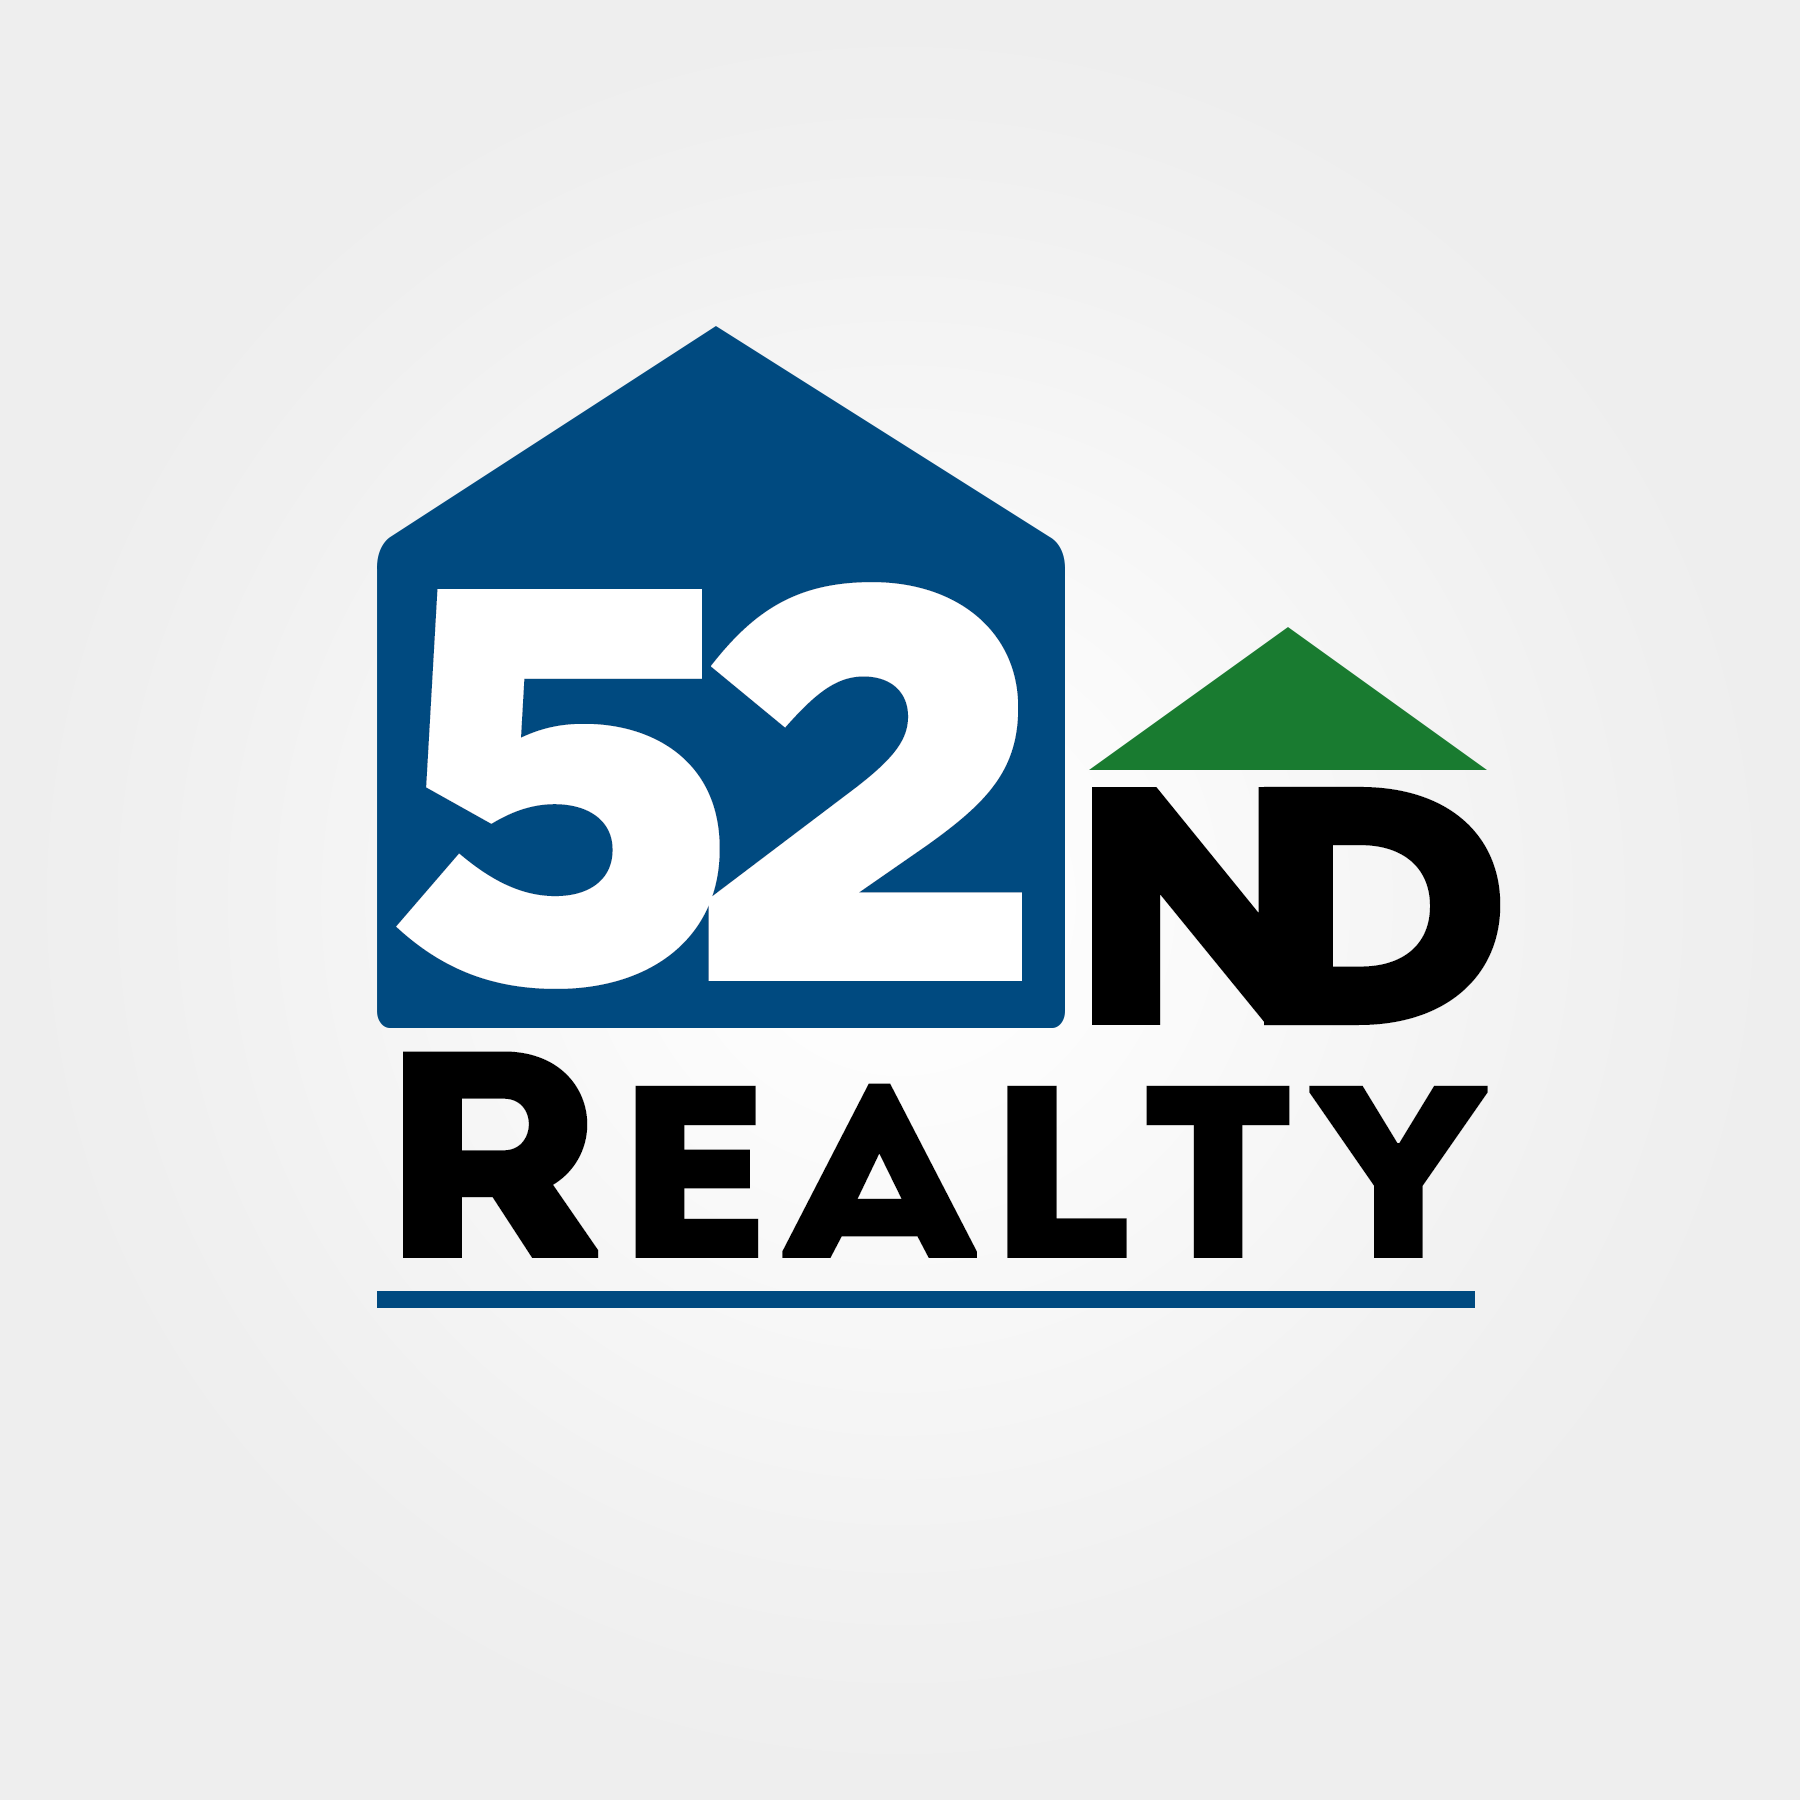 Logo Design by Lemuel Arvin Tanzo - Entry No. 119 in the Logo Design Contest 52nd Street Realty Logo Design.